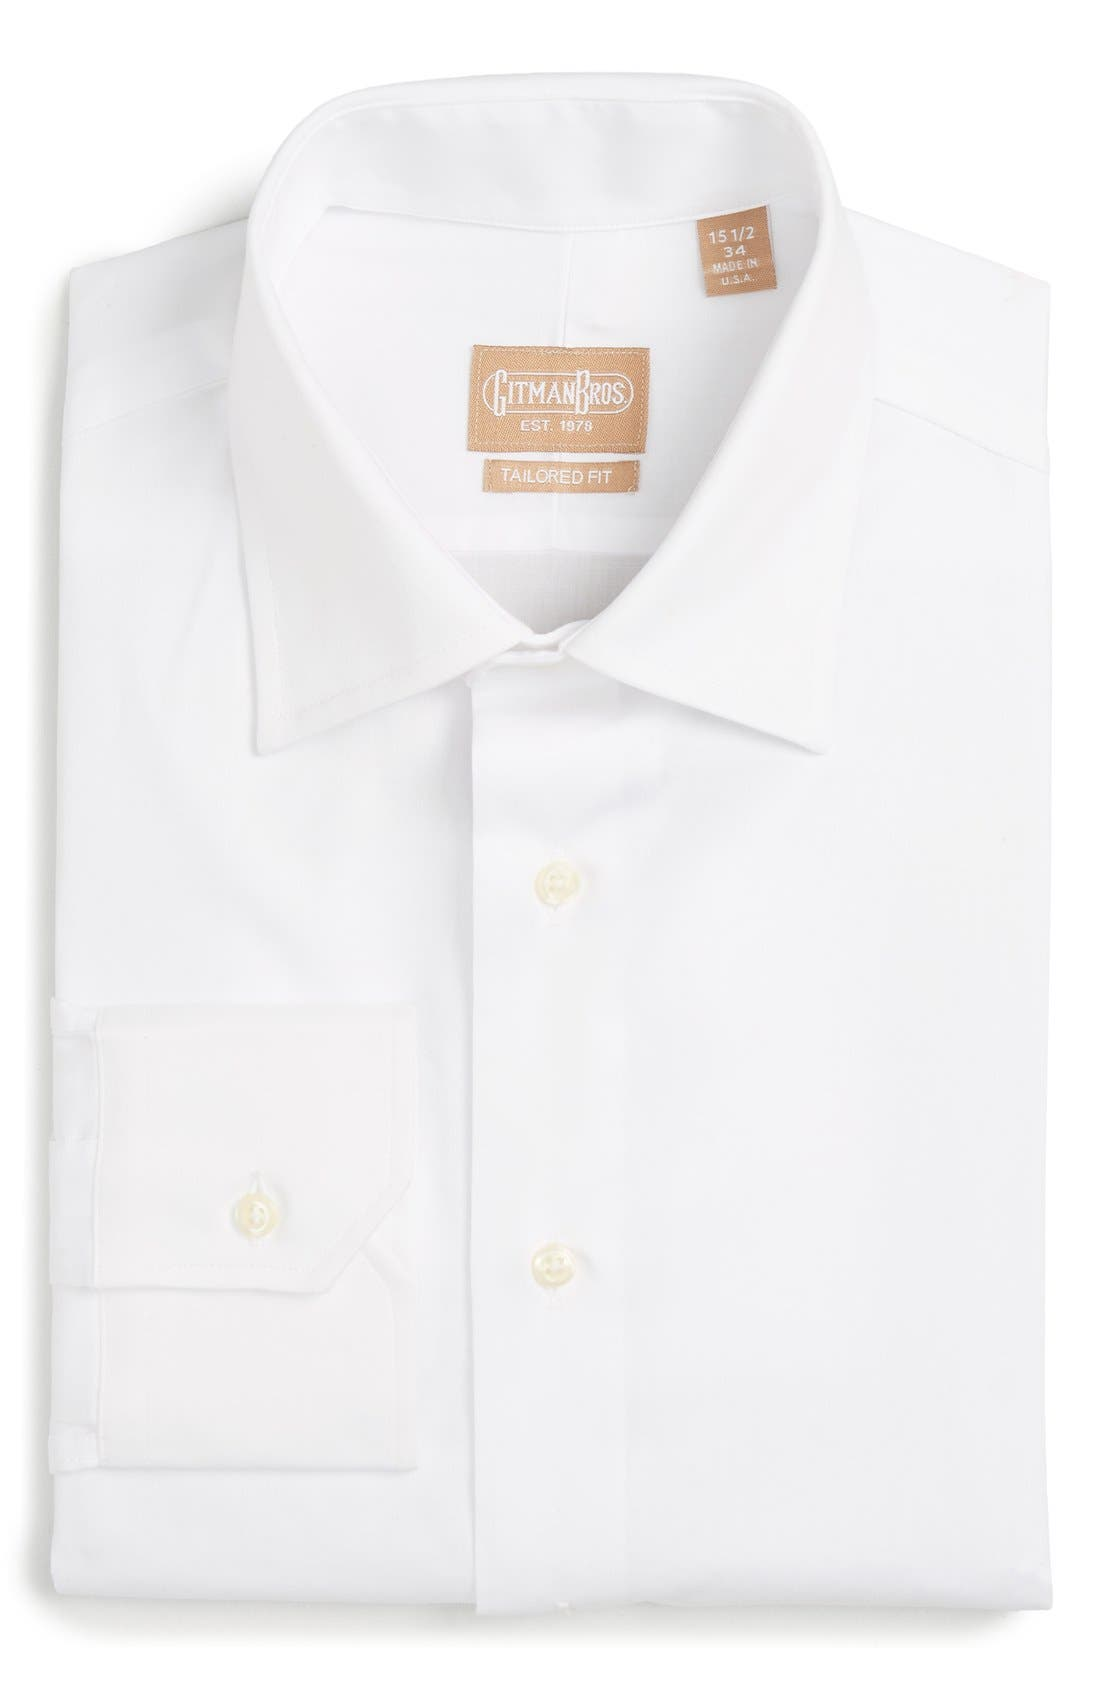 Tailored Fit Solid Dress Shirt,                             Alternate thumbnail 3, color,                             WHITE